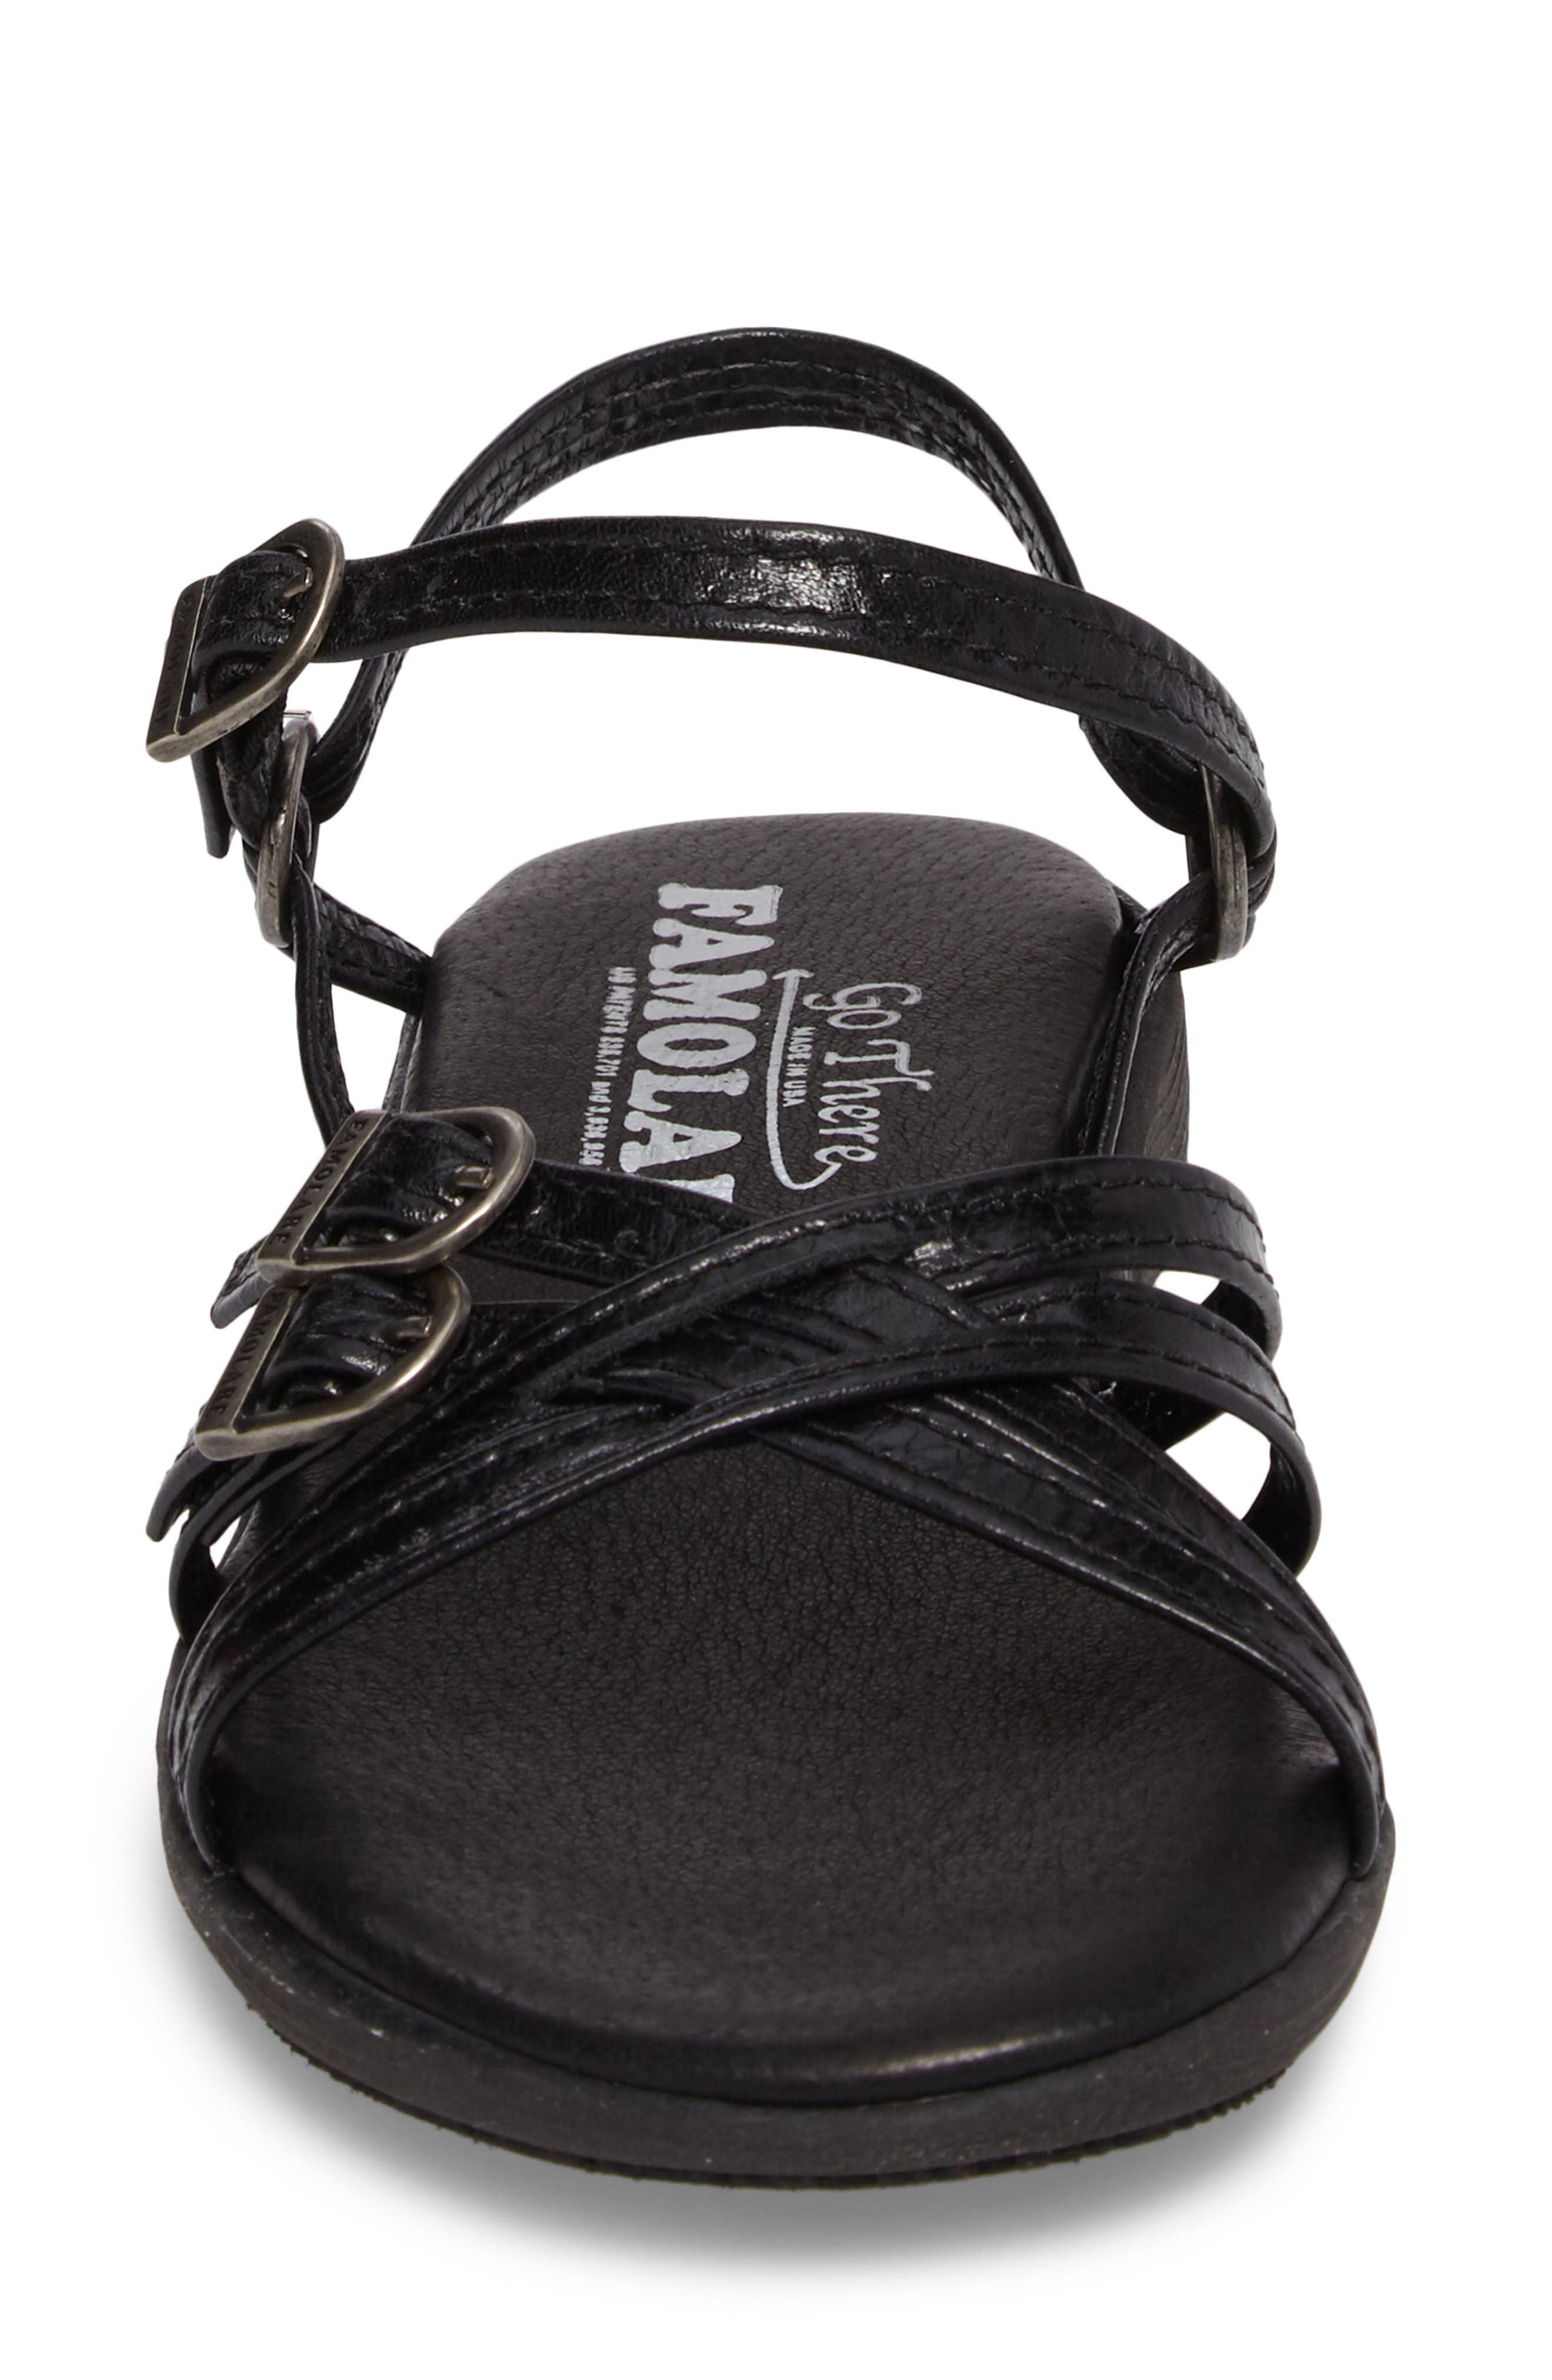 Strapsody Buckle Sandal,                             Alternate thumbnail 4, color,                             COAL LEATHER